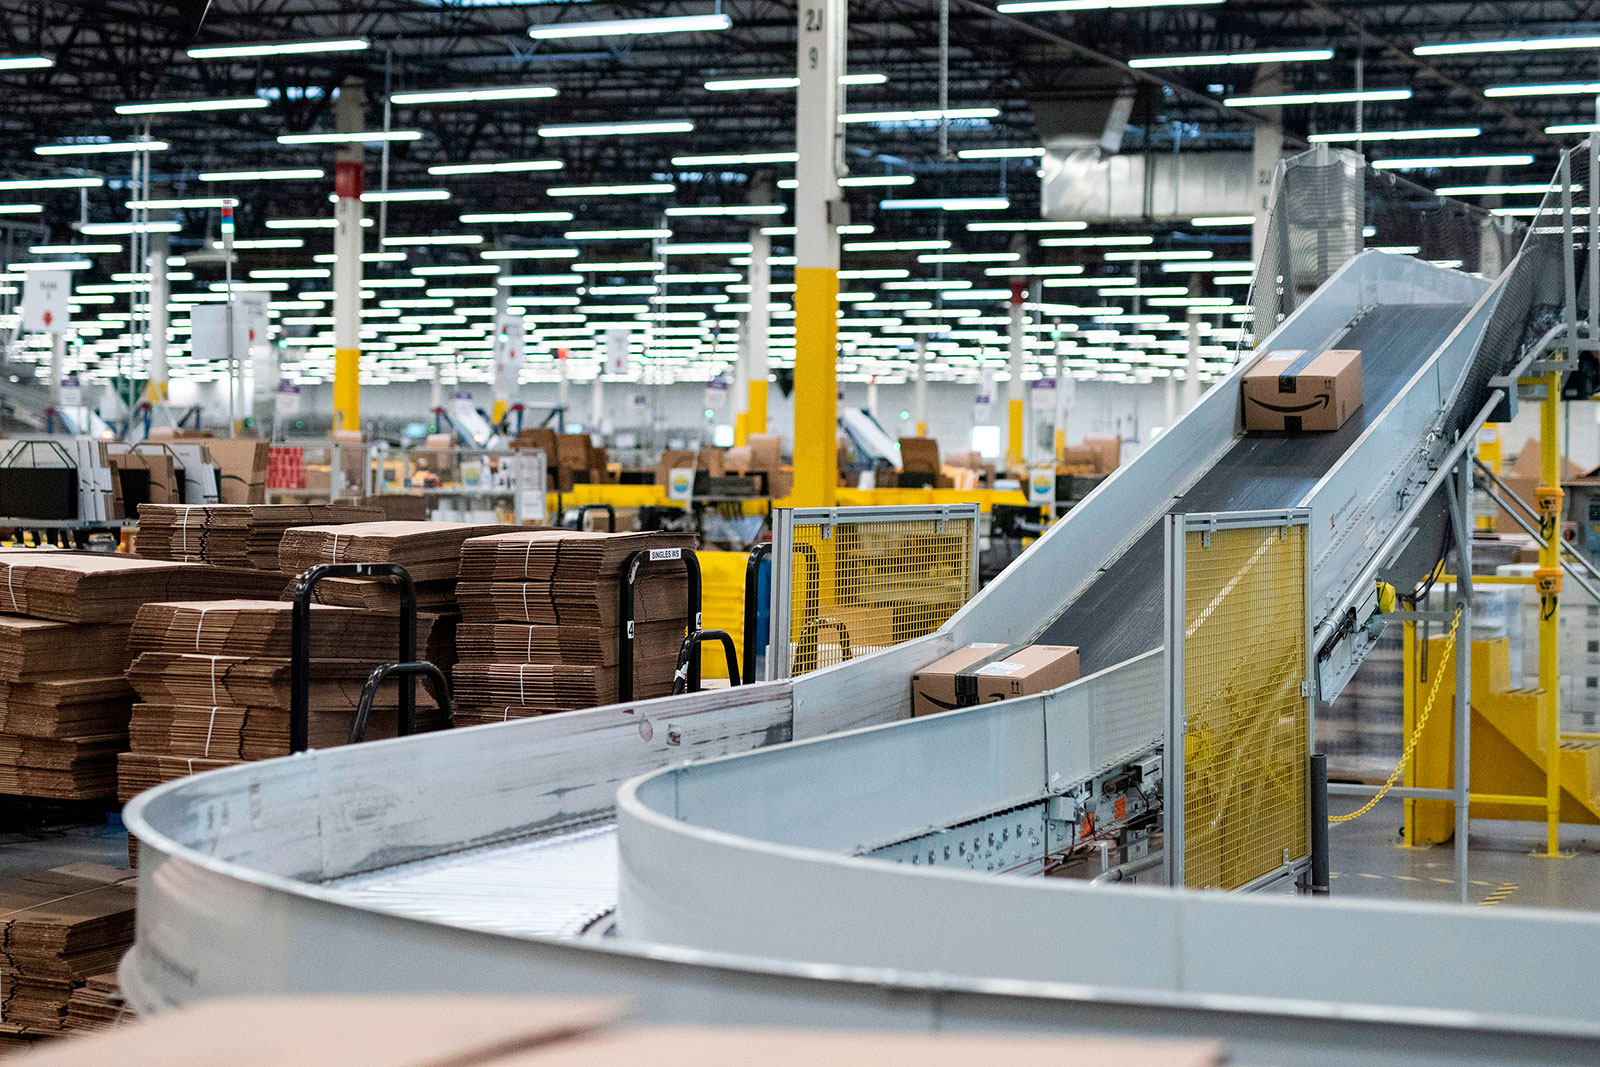 Packages move along a conveyer belt inside Amazon's fulfillment center in Kent, Washington, in 2018.